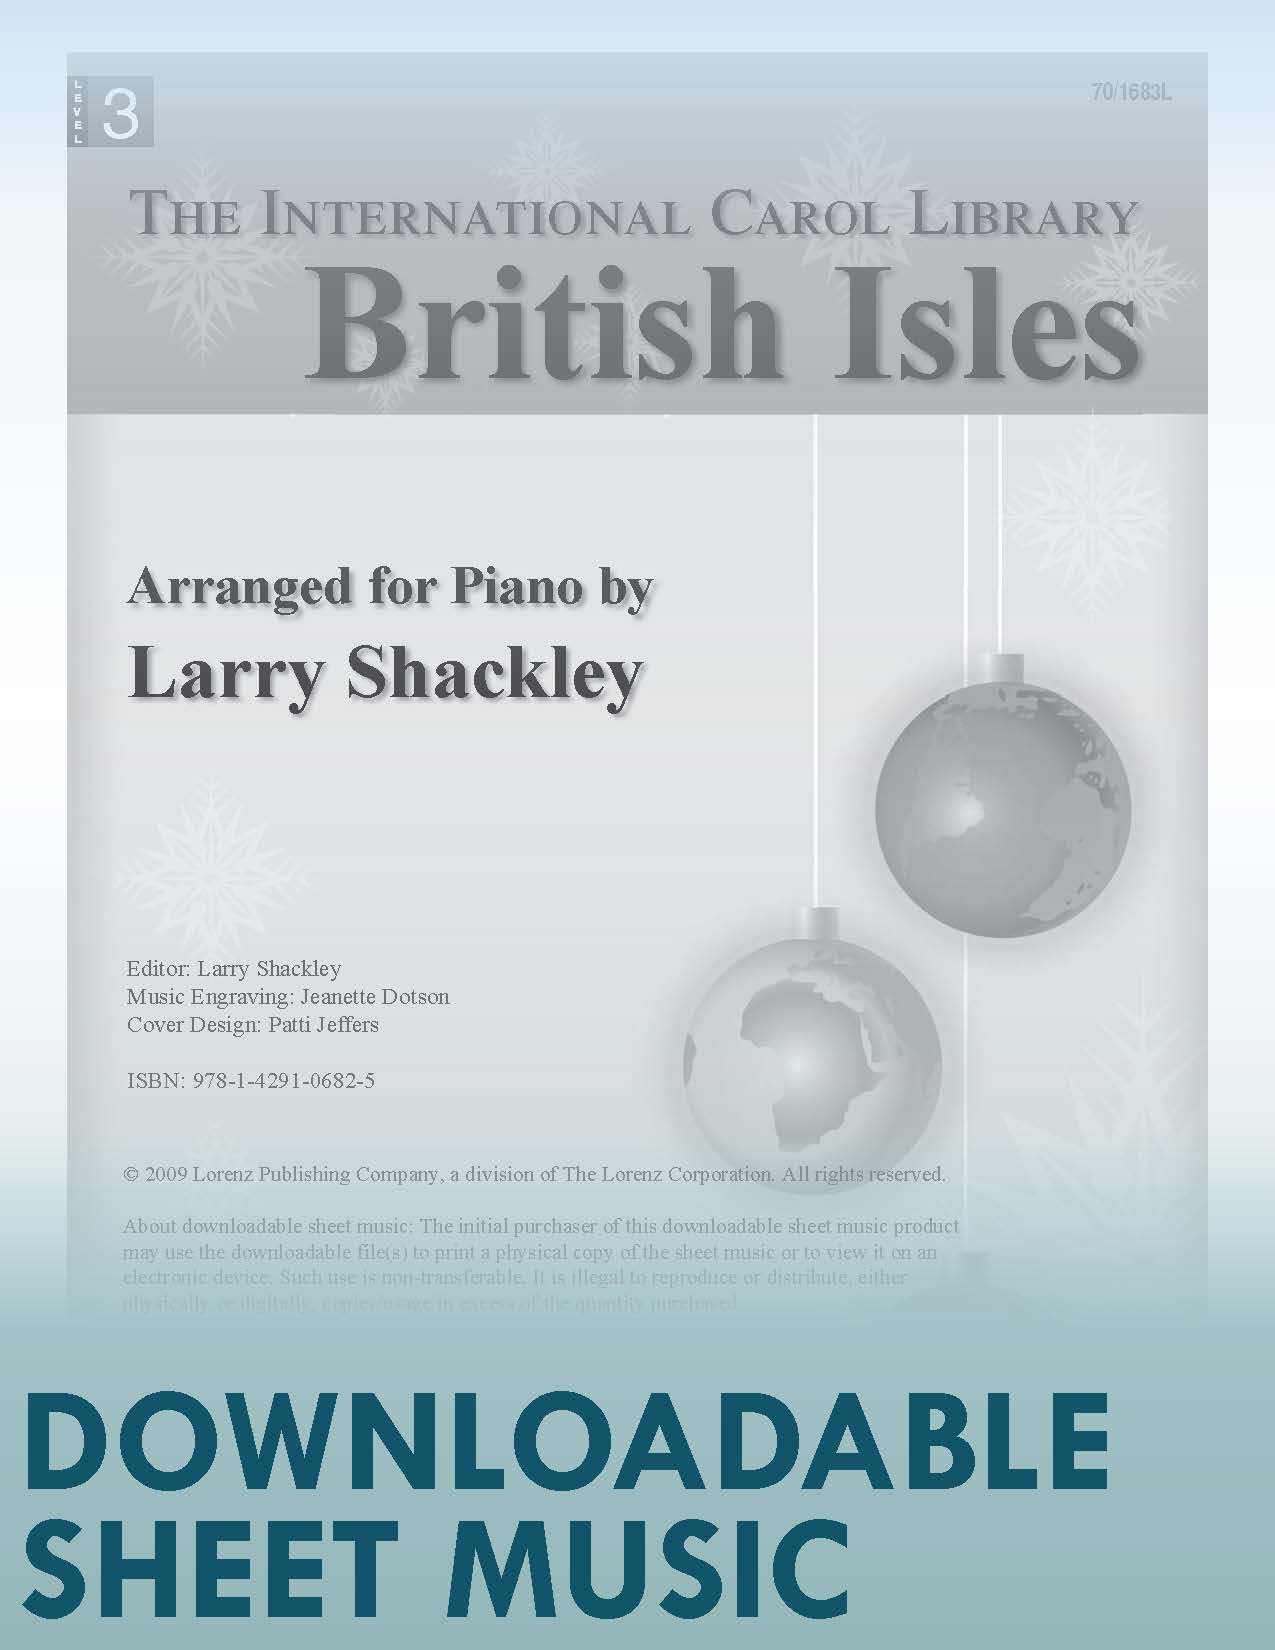 The International Carol Library - British Isles - Digital Download